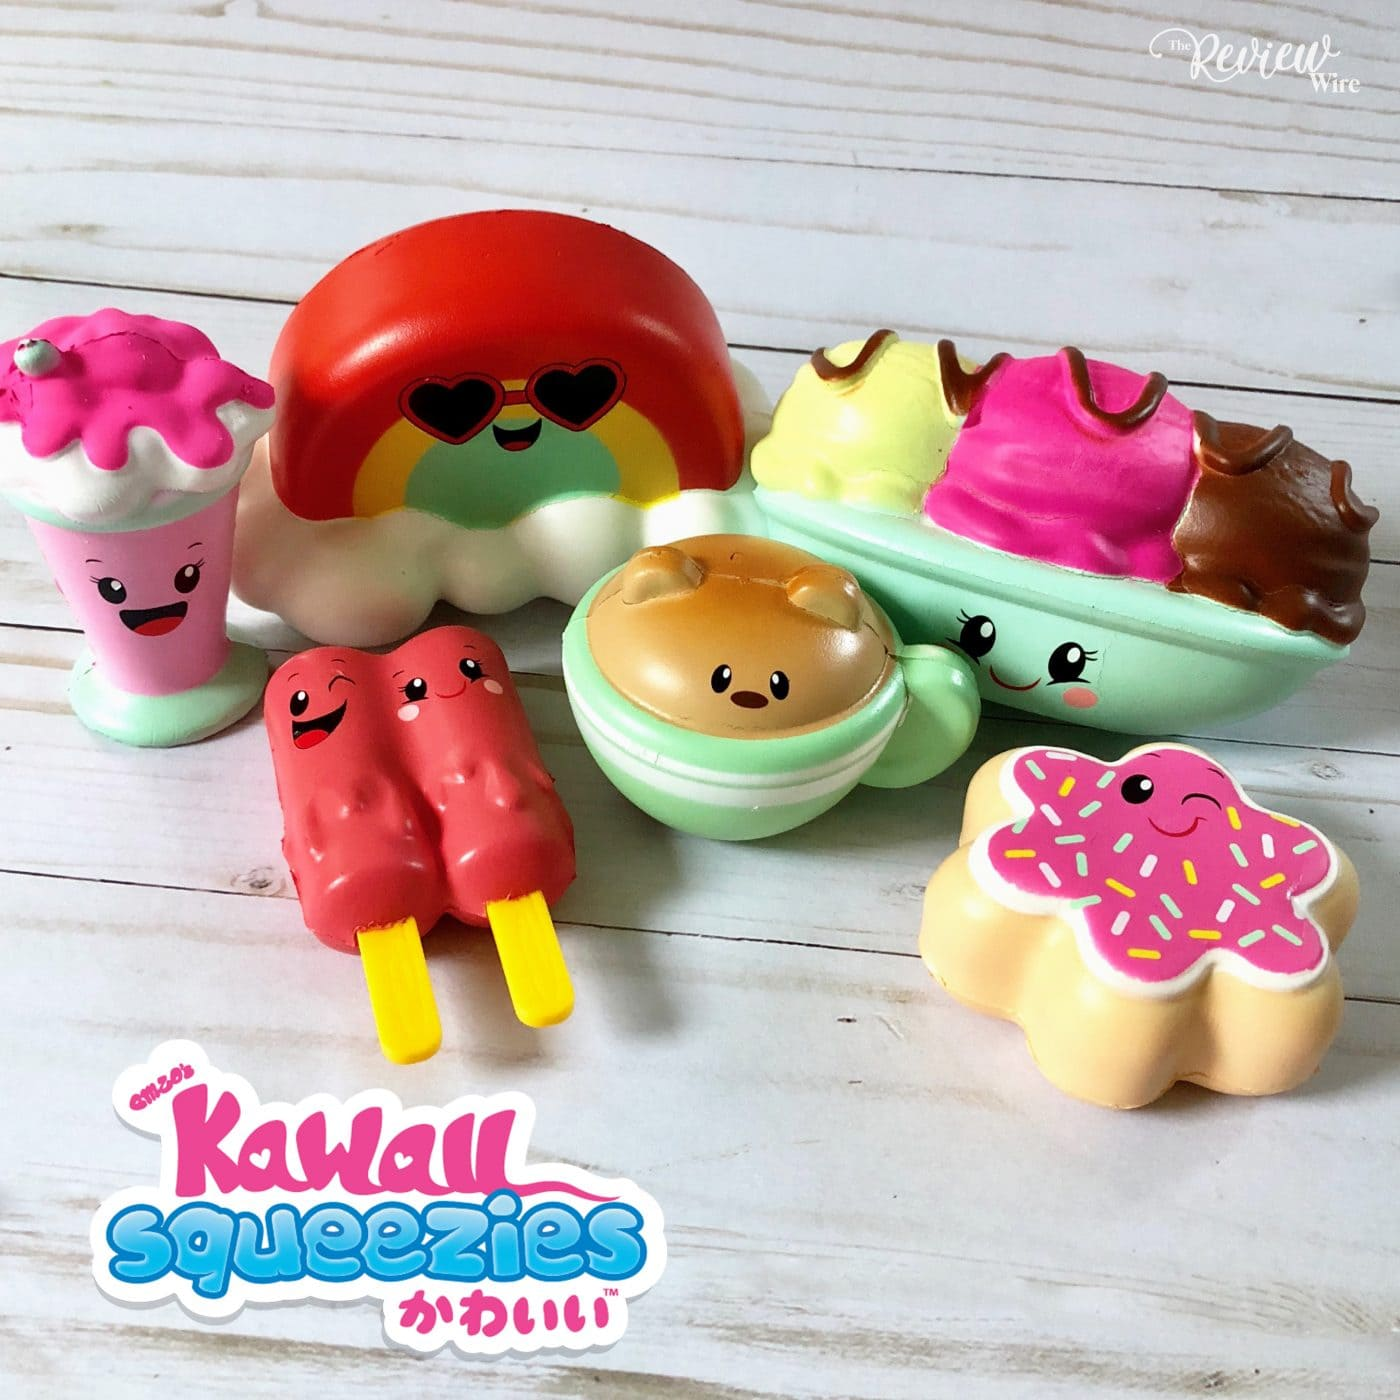 The Review Wire Summer Guide 2018 Just Play Kawaii Squeezies